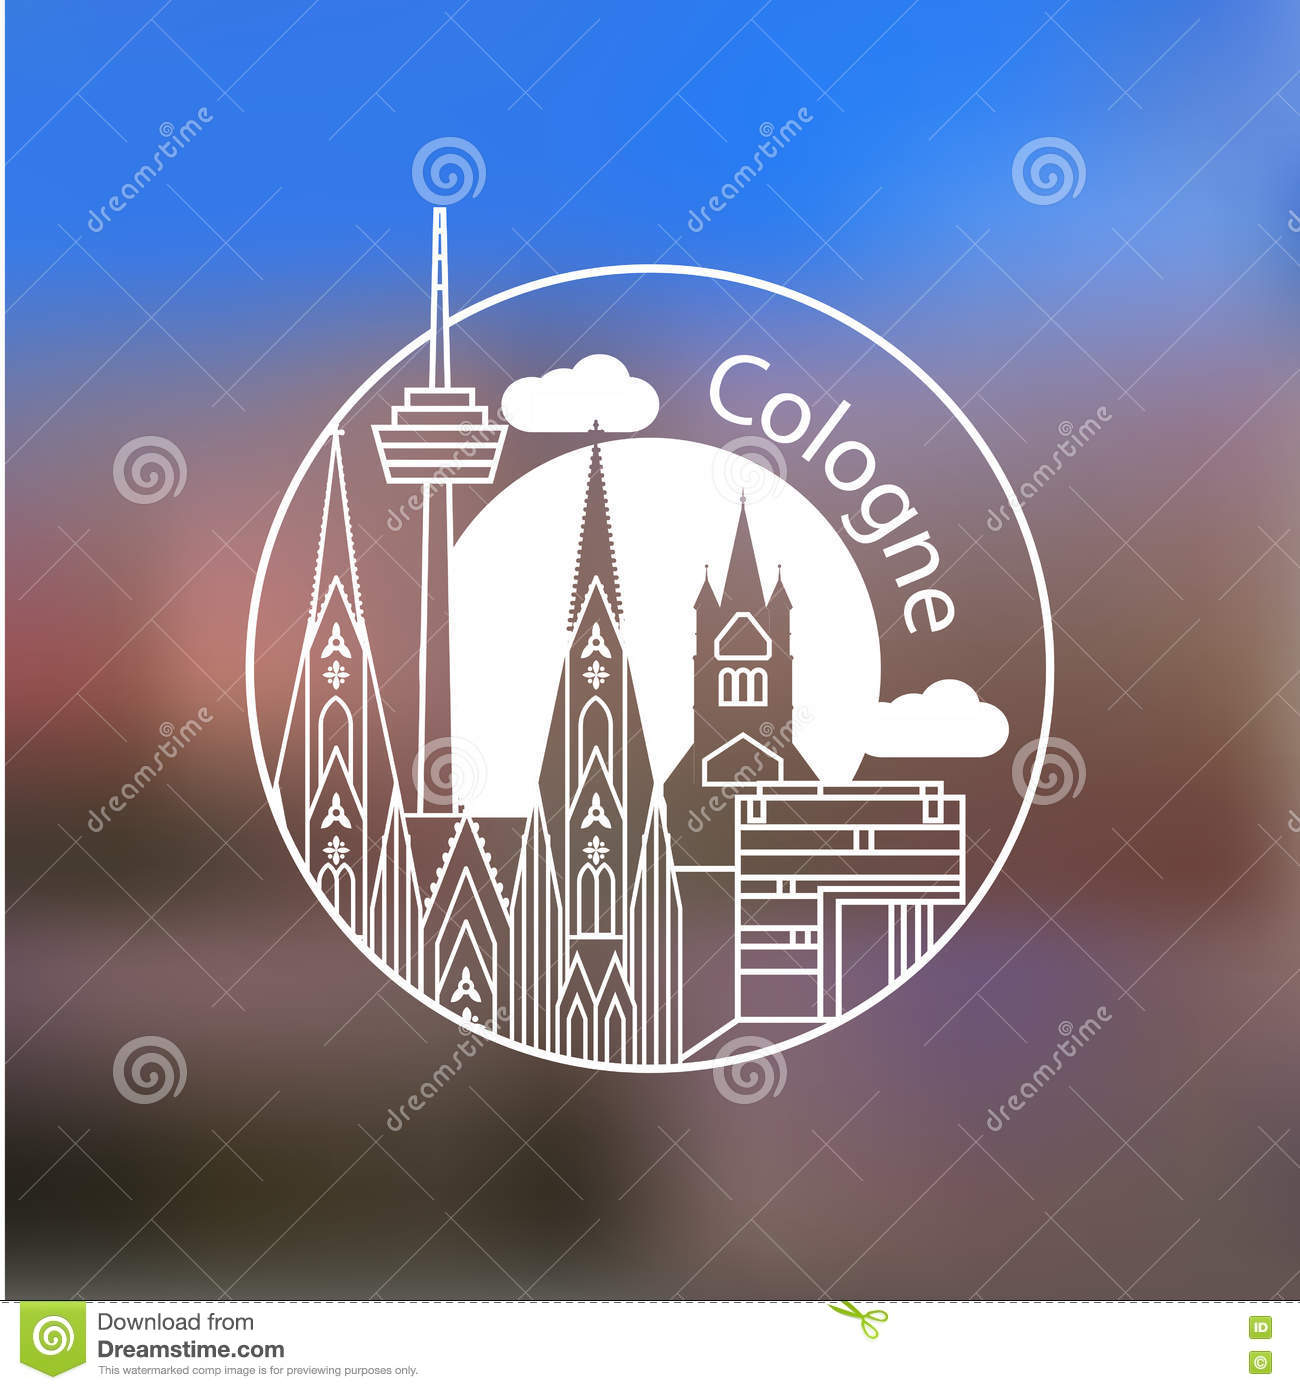 Koln vector linear logo. Trendy stylish landmarks. Great St. Martin Church,  Cologne